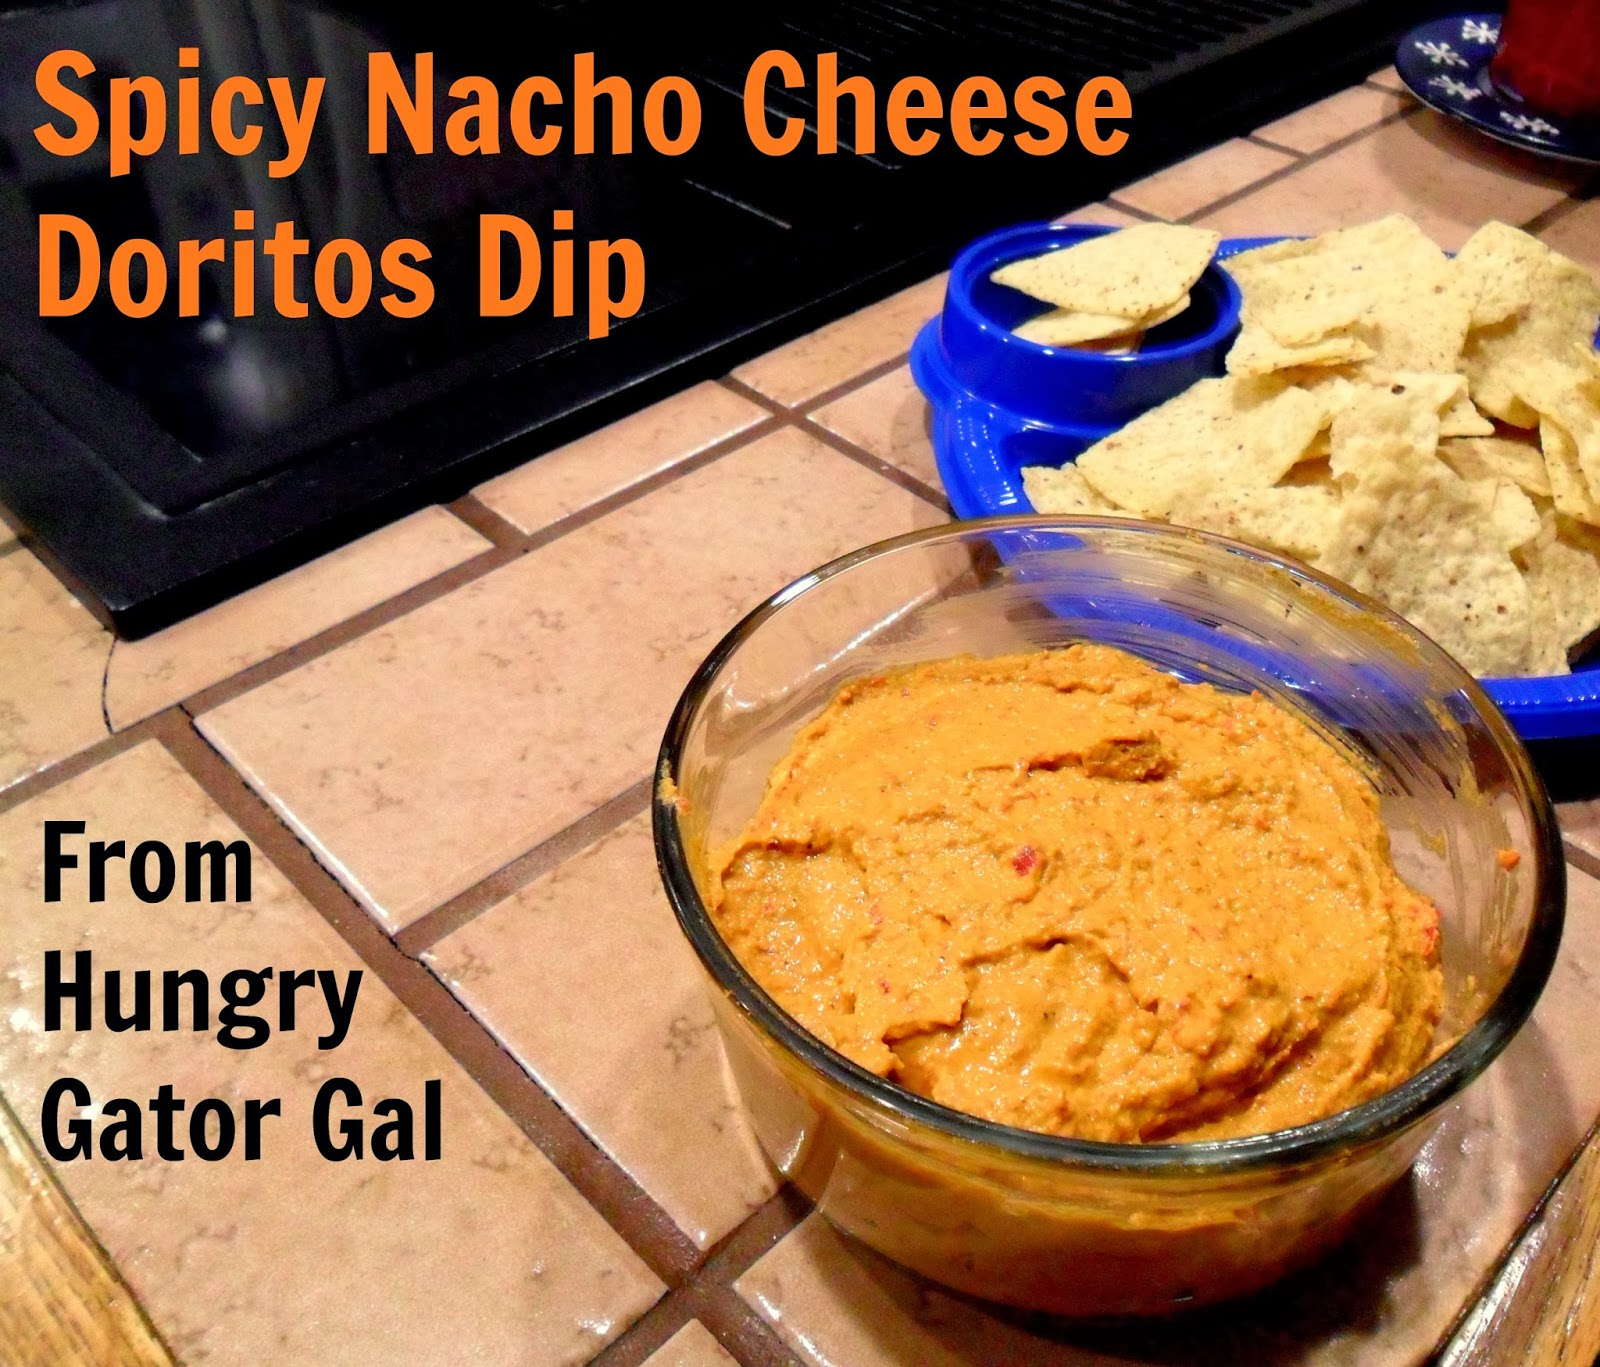 Hungry Gator Gal Spicy Nacho Cheese Doritos Dip